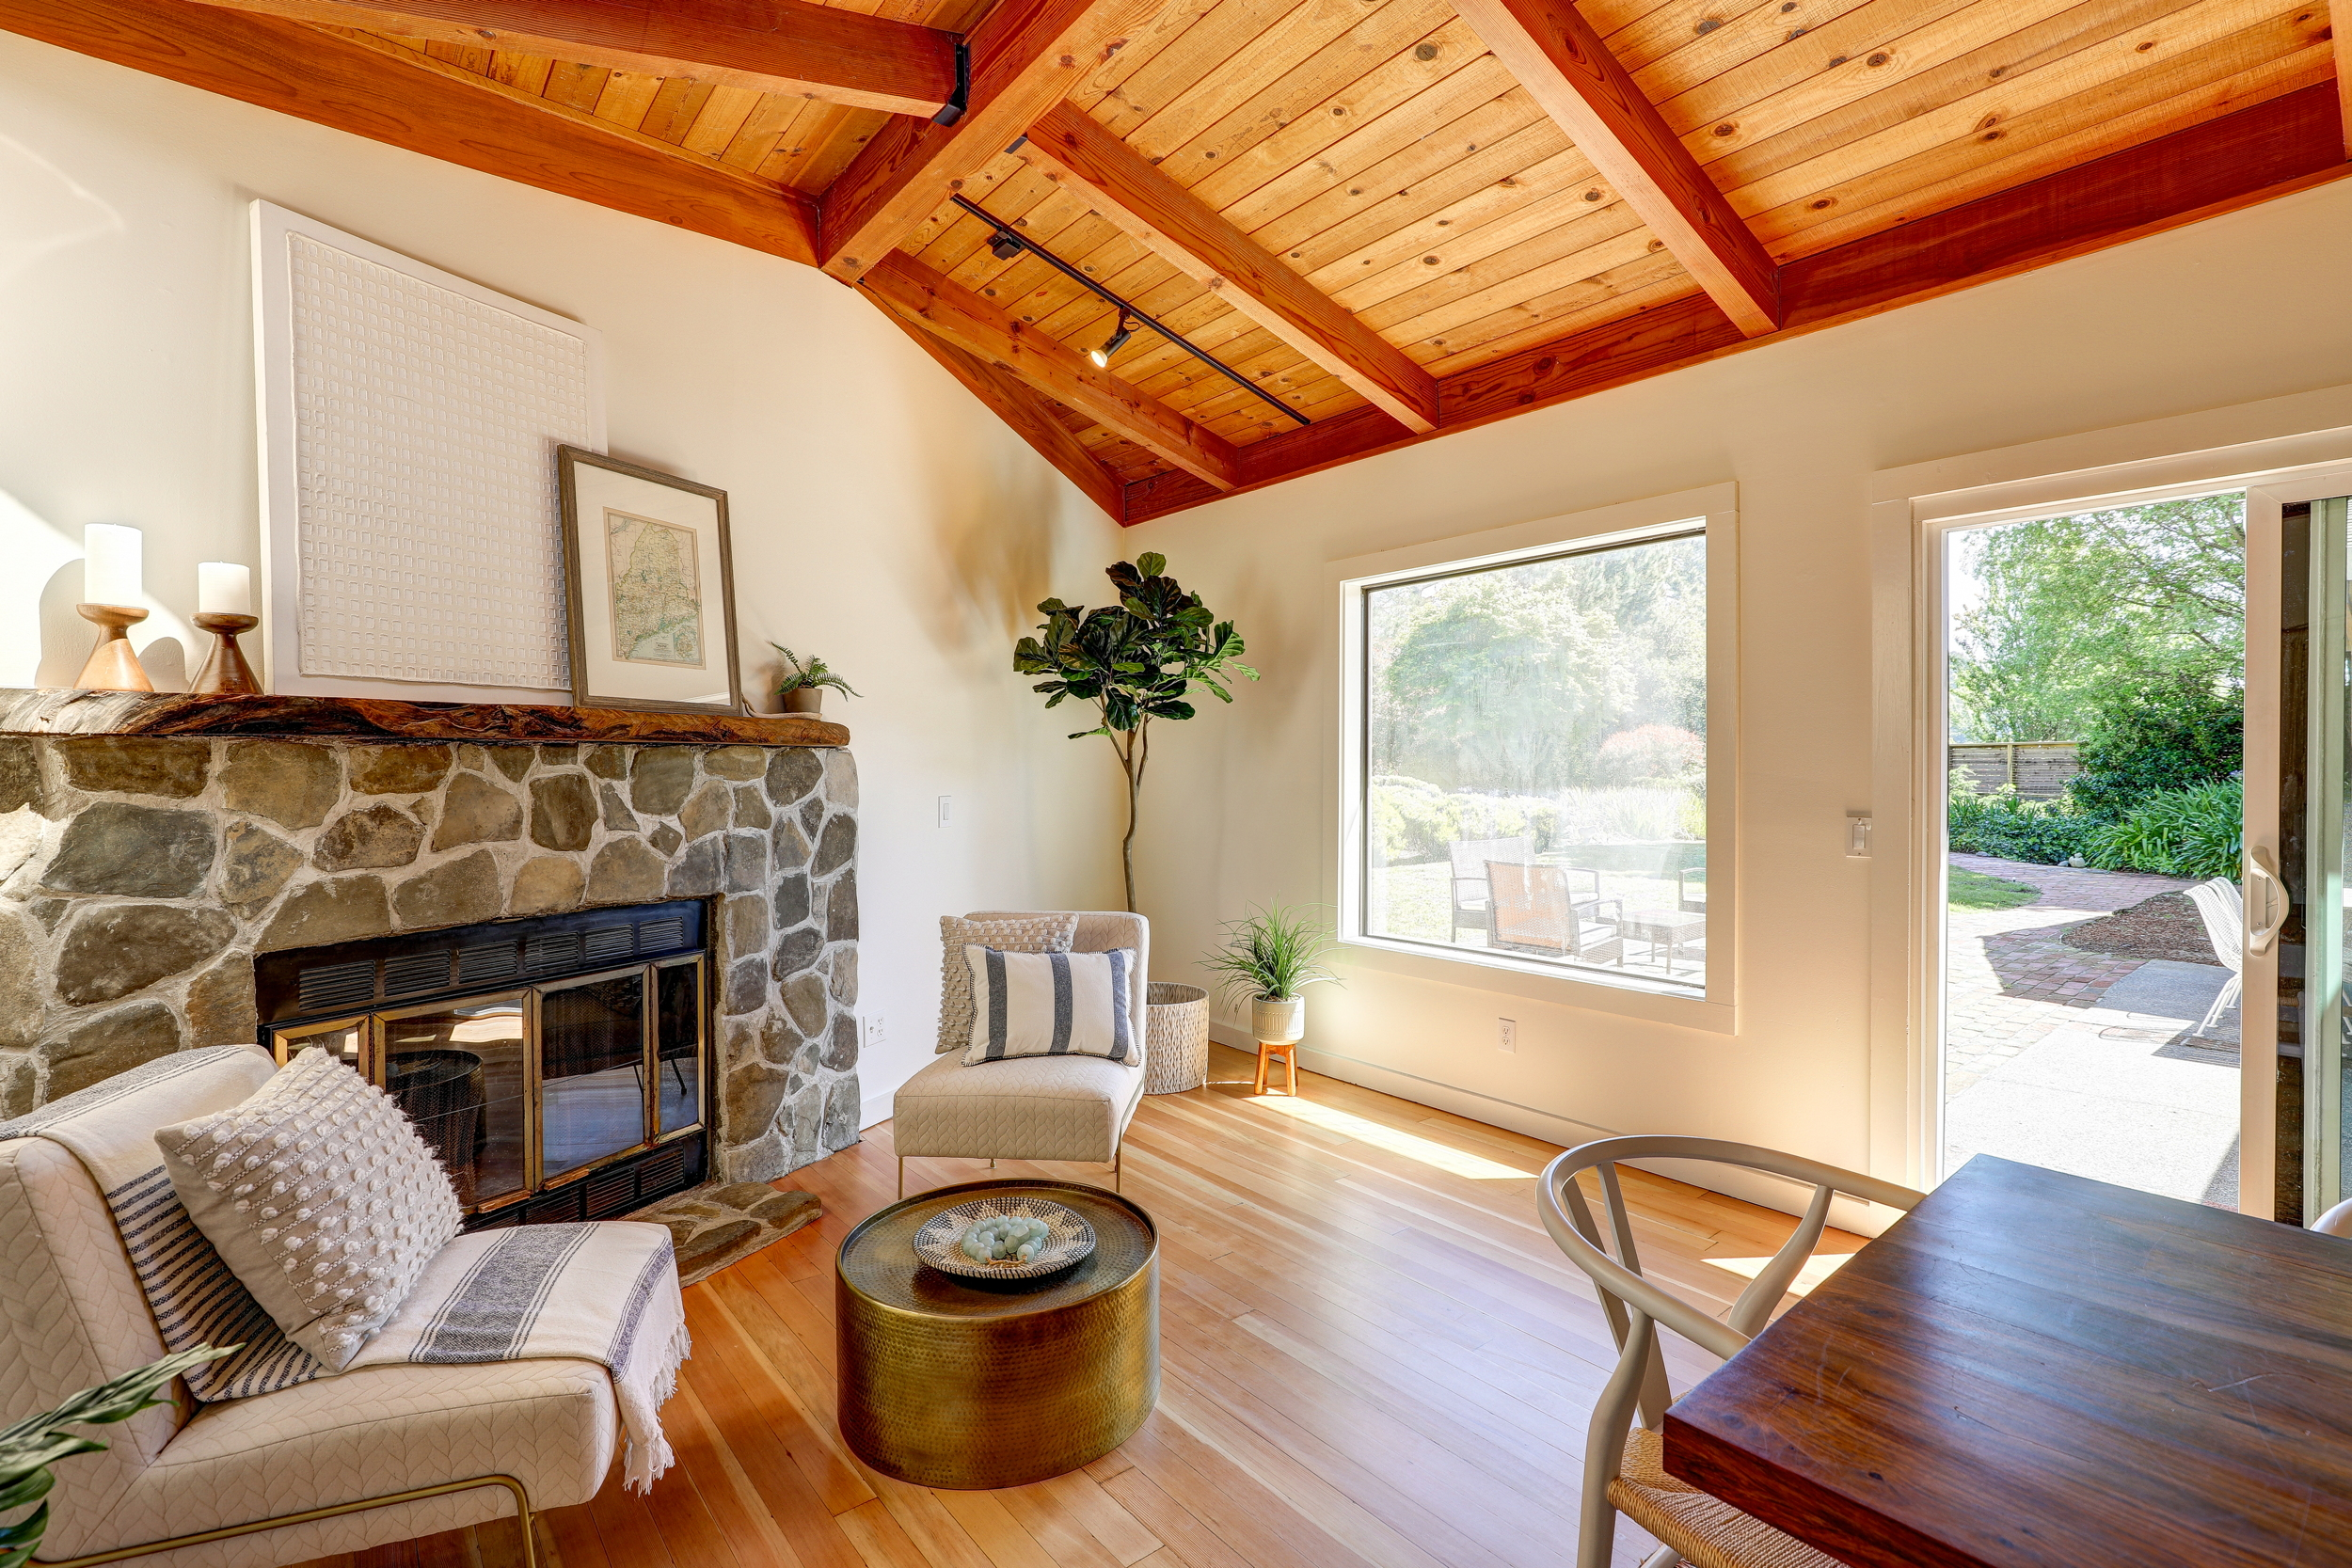 803 Everest Mill Valley's Best Realtor 20 - Own Marin Pacific Union - Marin County's Top Realtor.jpg